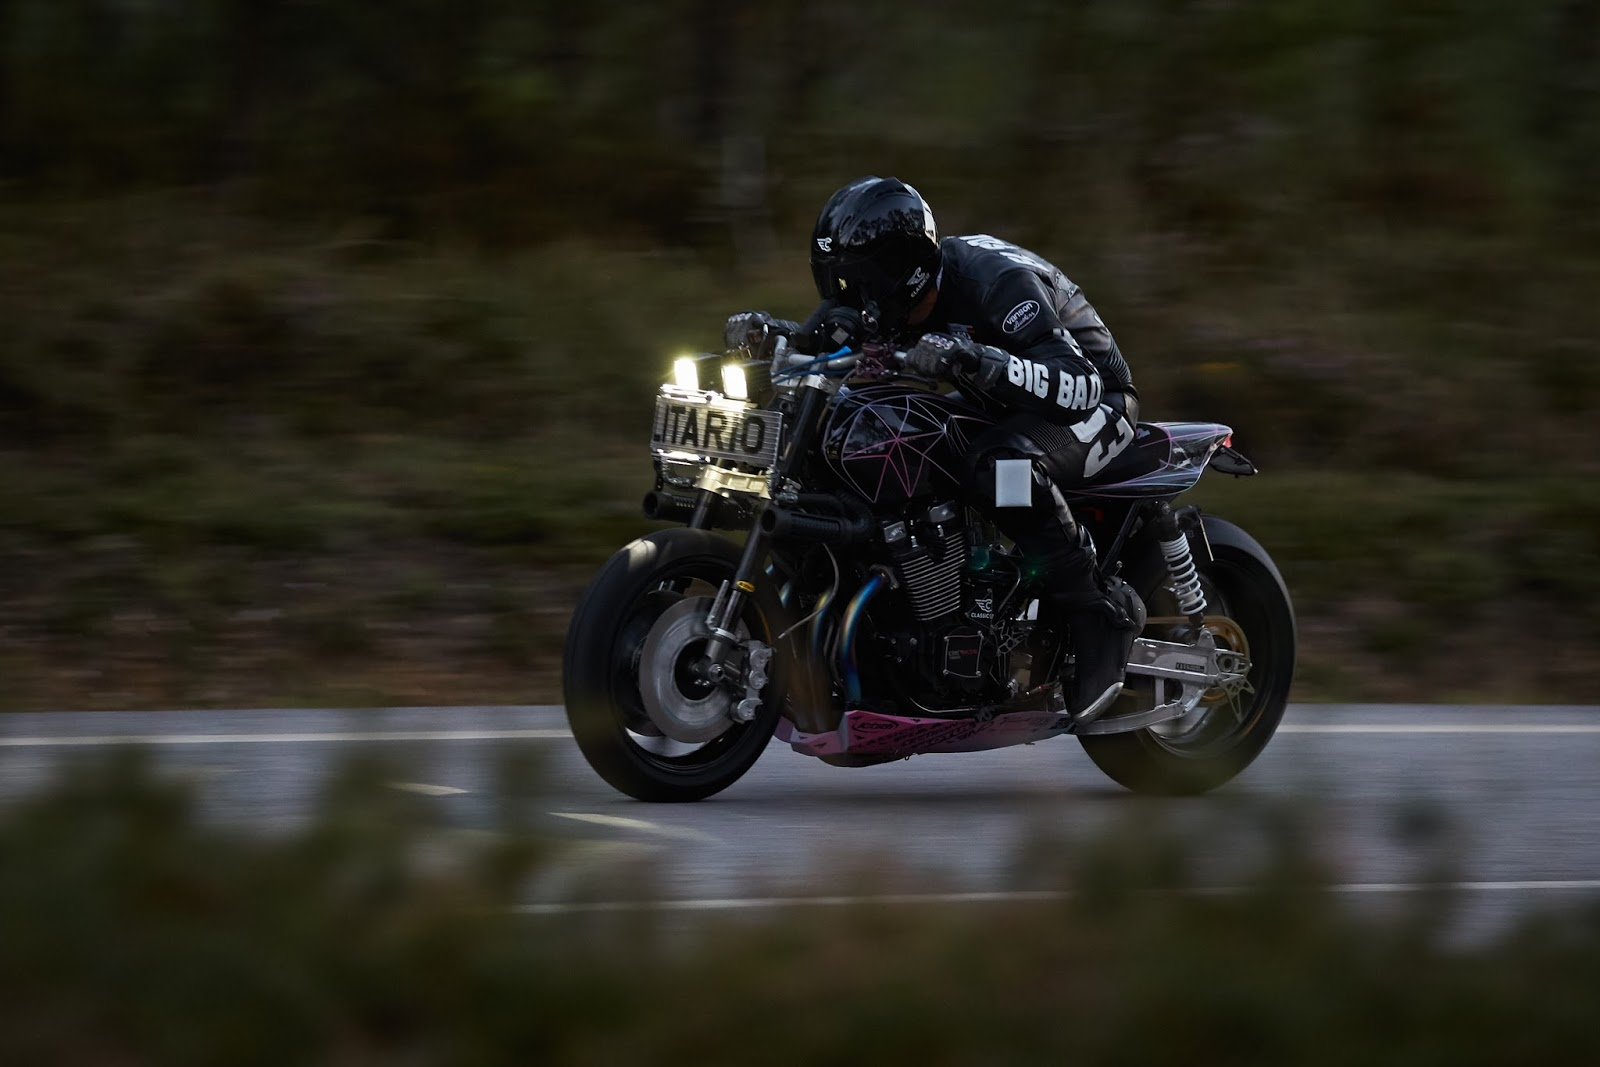 Unique builder el solitario does amazing things with yamaha xjr1300